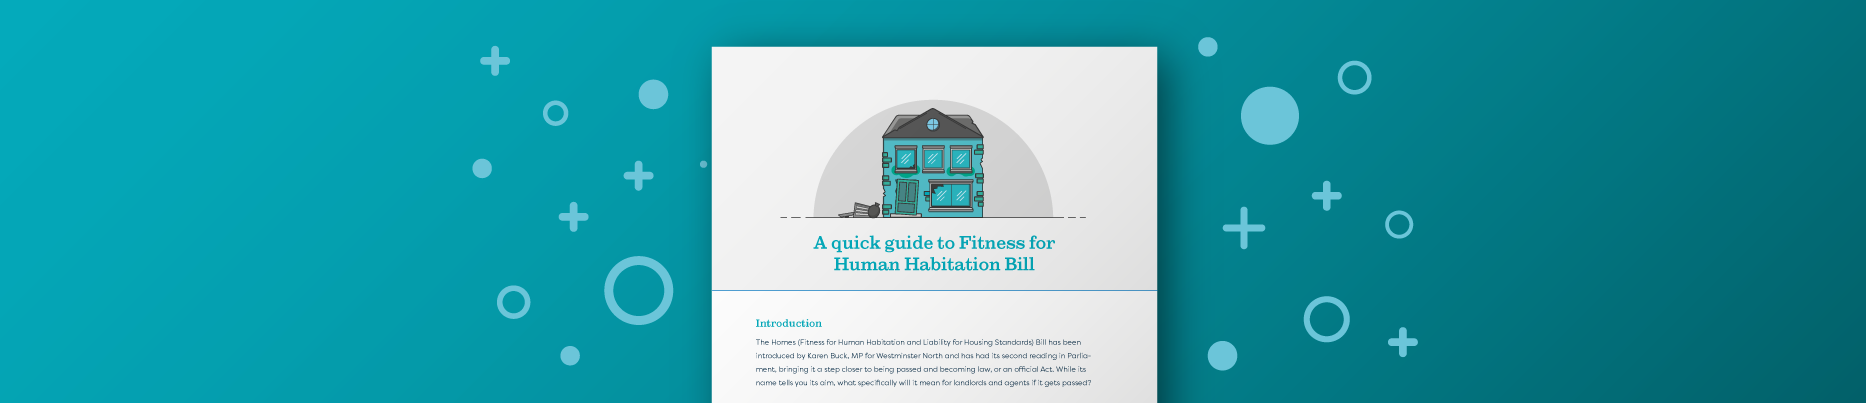 What Do You Need to Know About the Fitness for Human Habitation Bill?